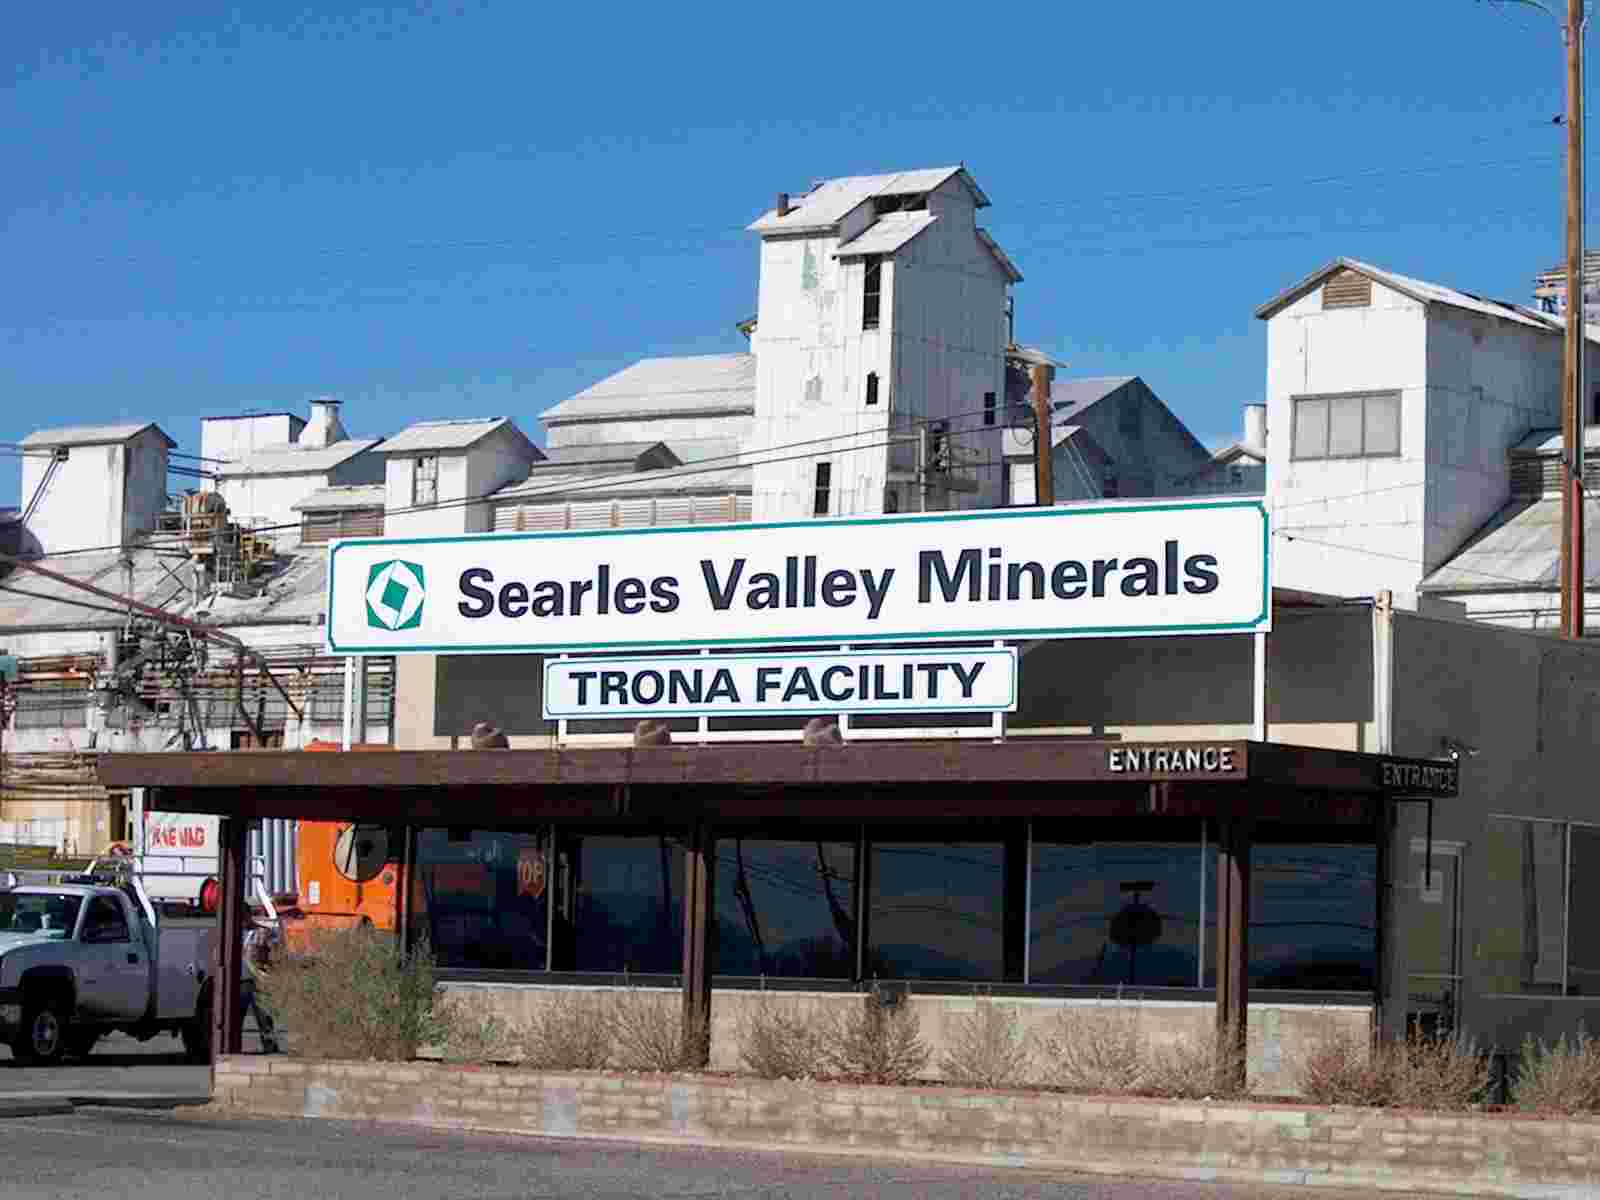 Searles Valley Minerals Inc.